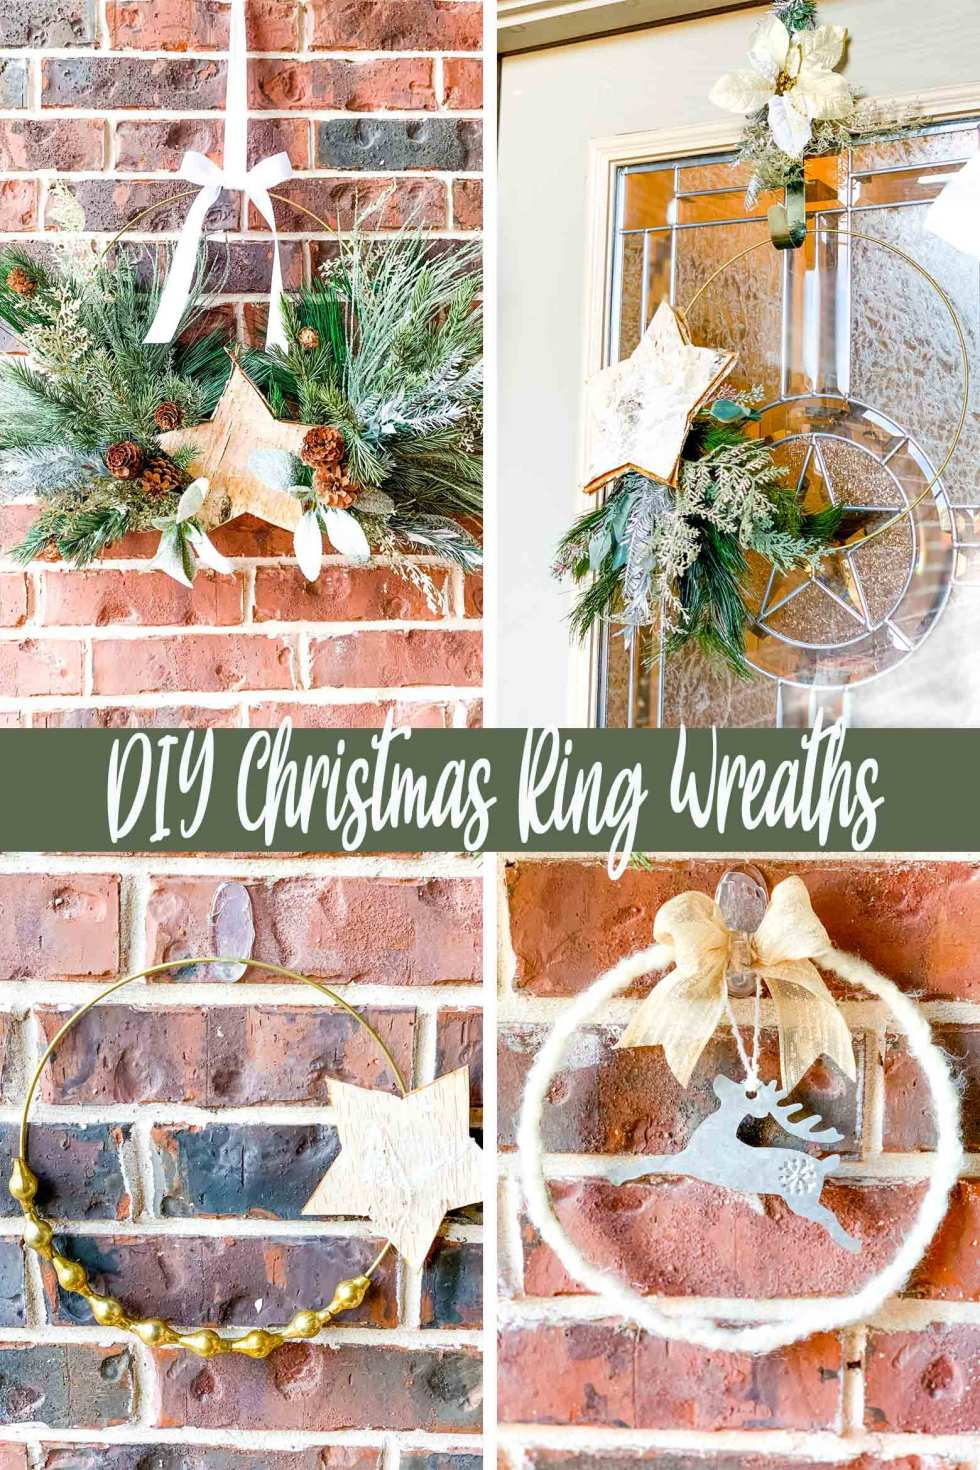 4 modern hoop ring wreaths decorated for Christmas